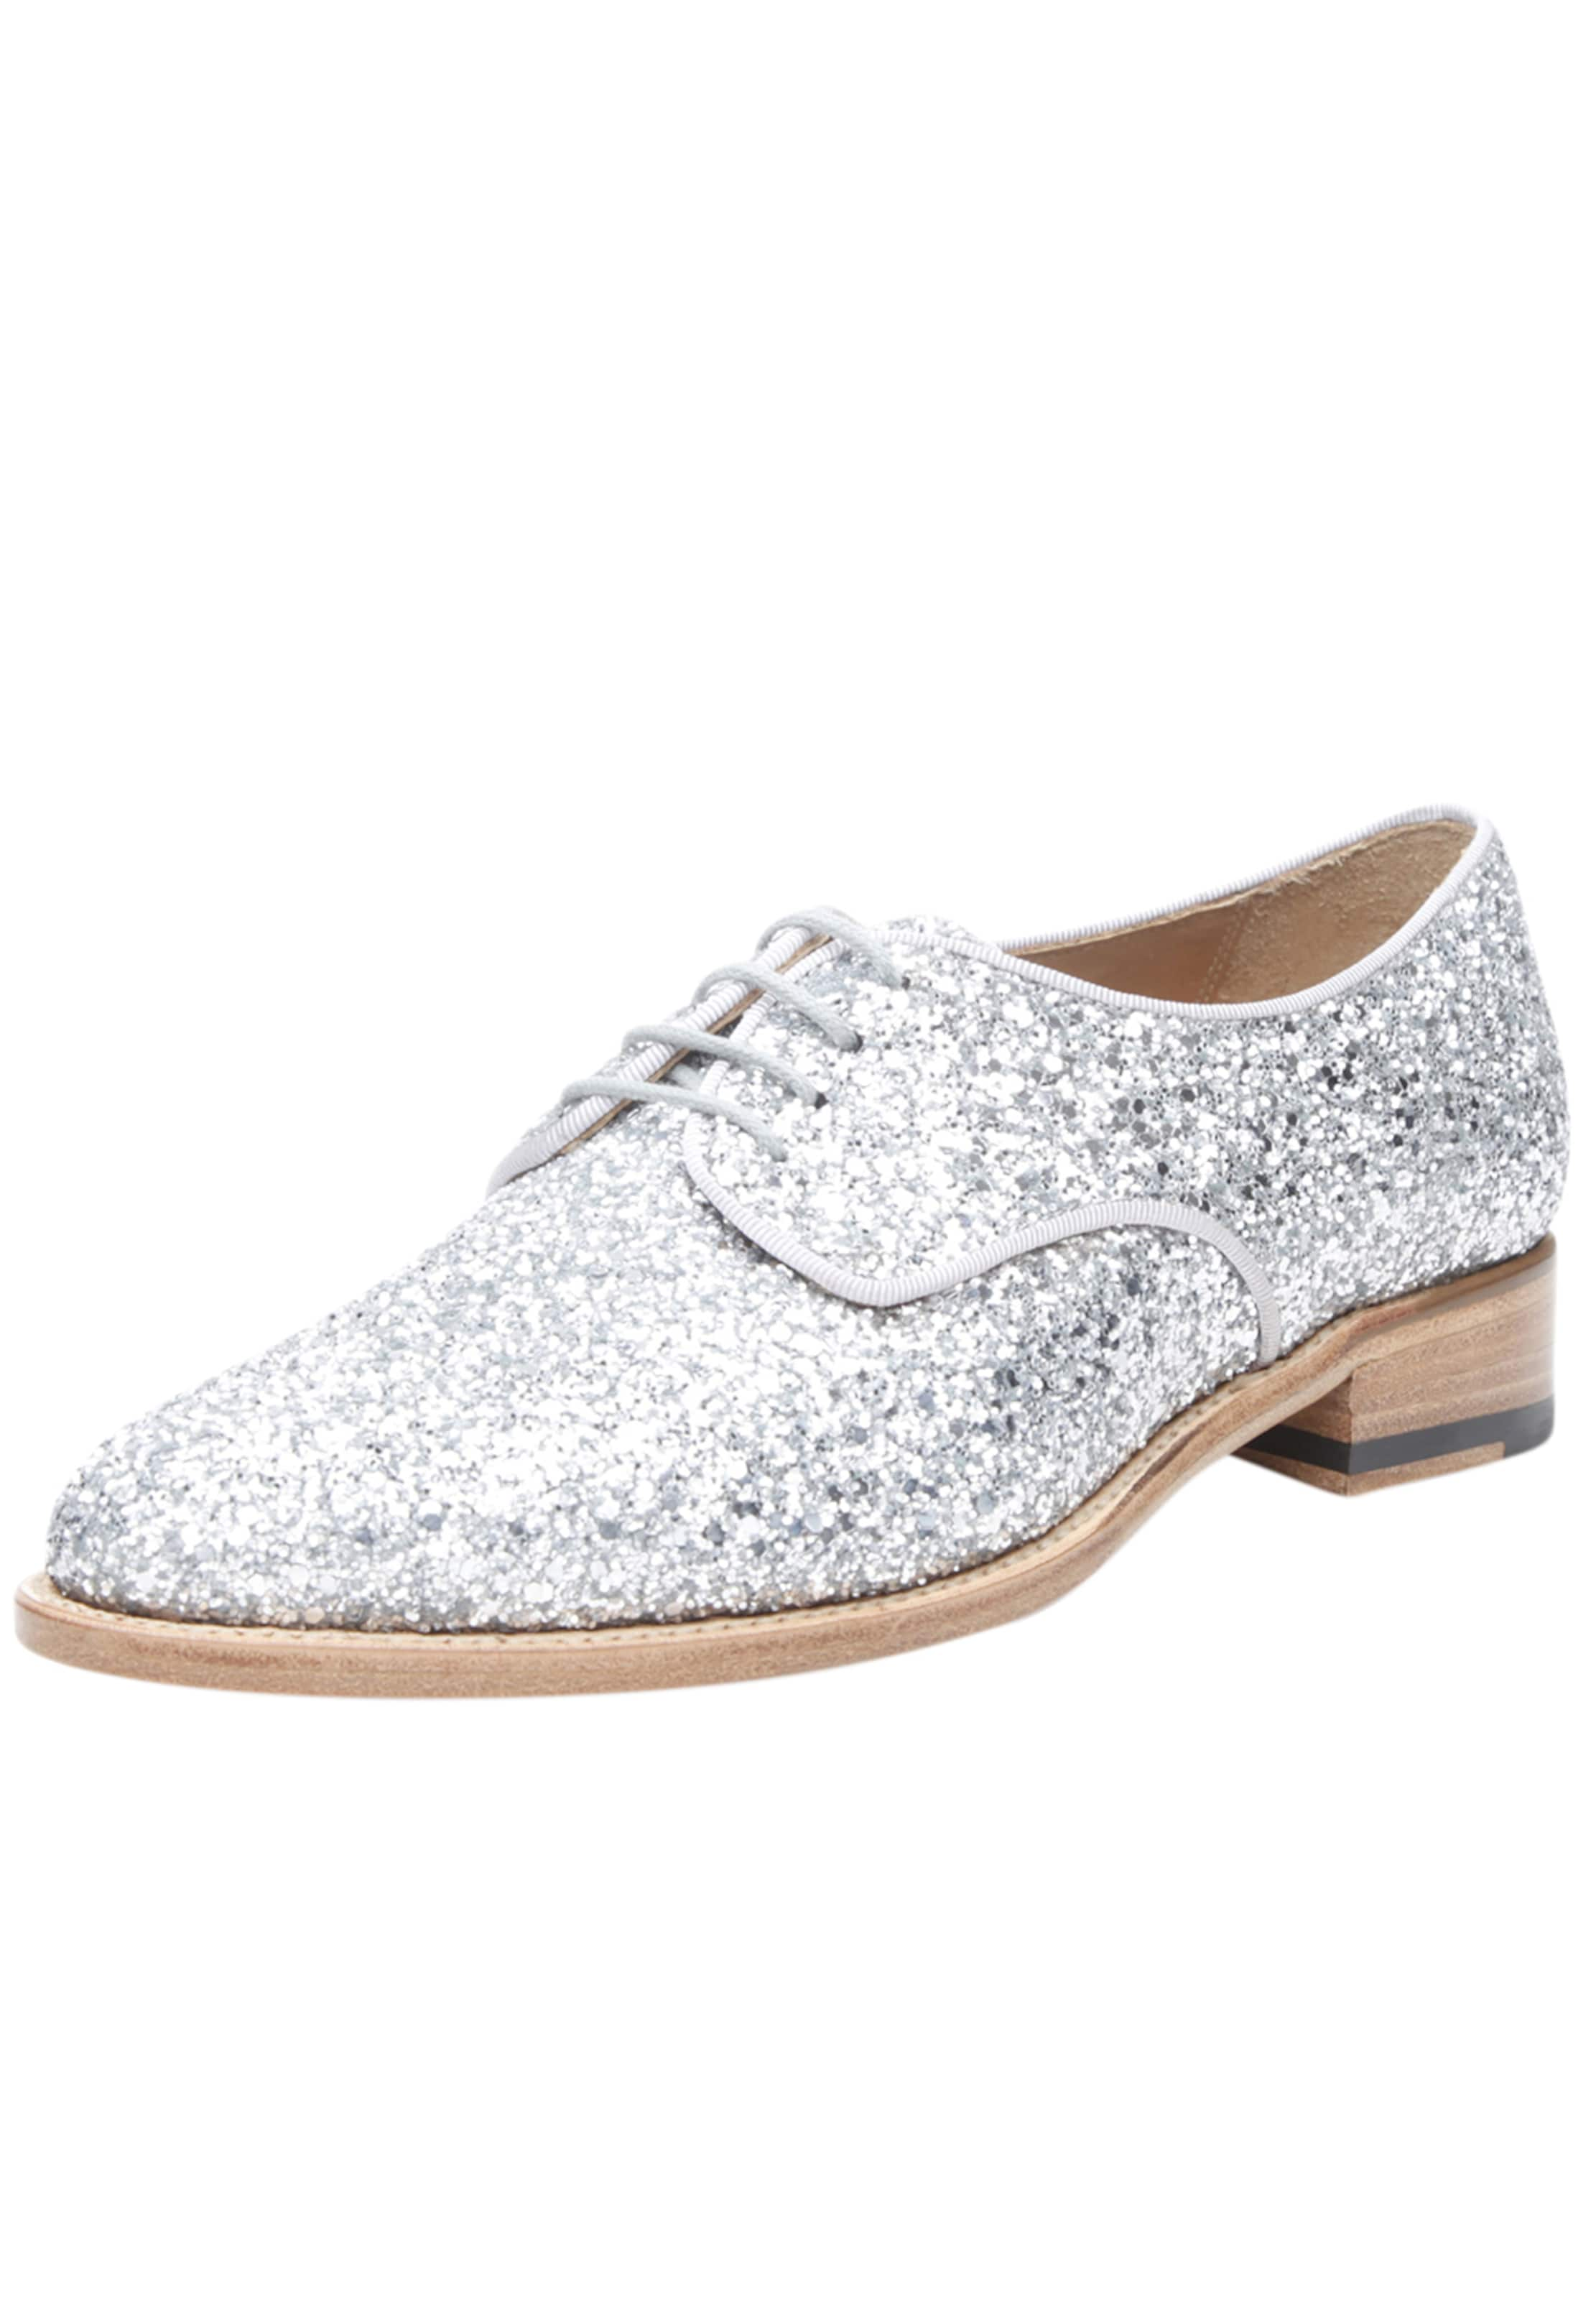 'no114' 'no114' Shoepassion Shoepassion Silber In Schnürschuhe Schnürschuhe Silber In HW2bD9IYeE